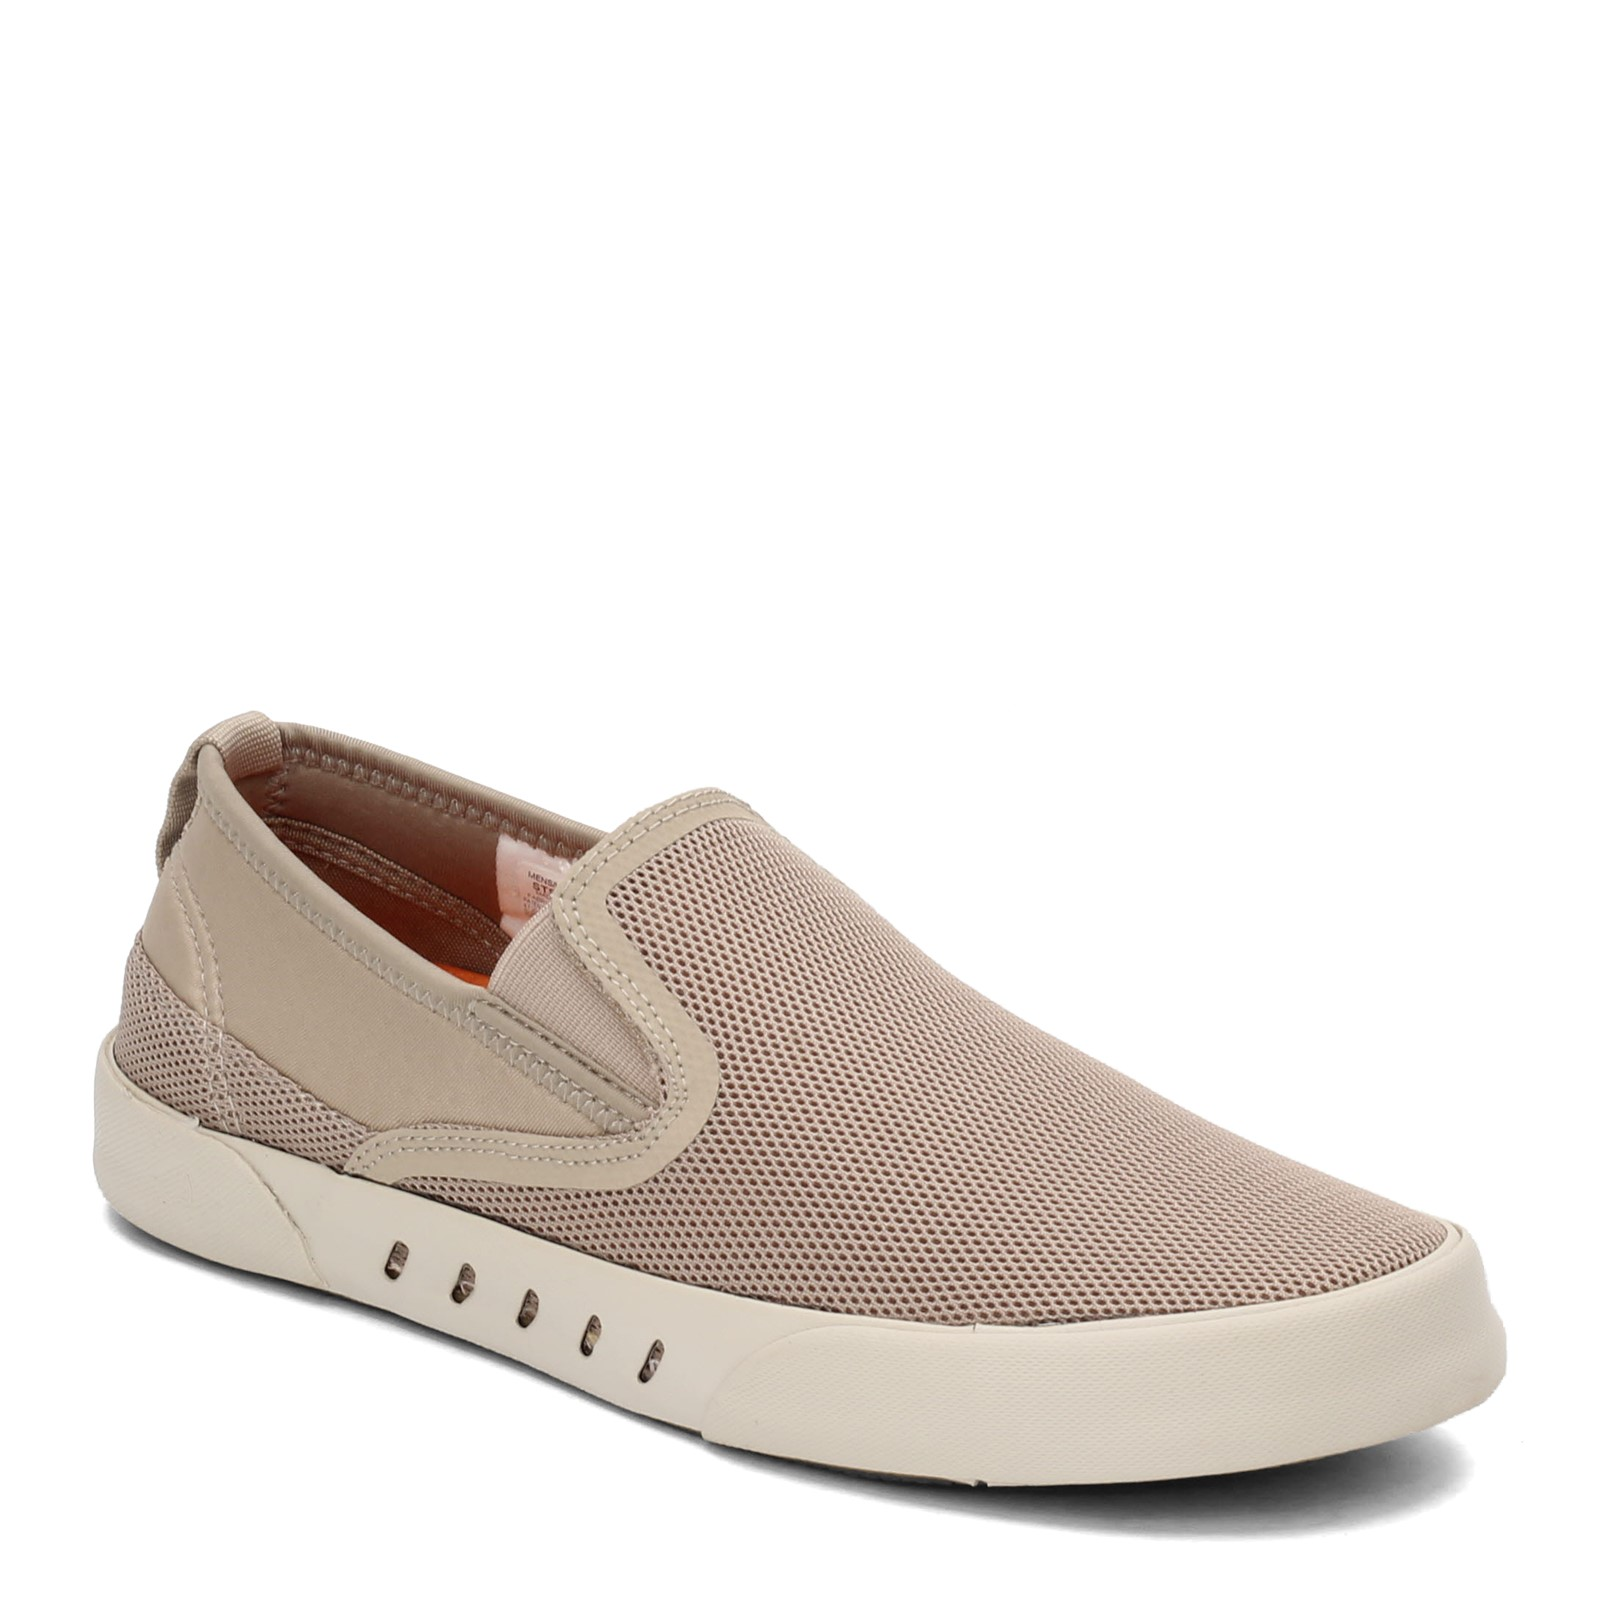 Men's Sperry, Maritime H2O Slip on Shoes